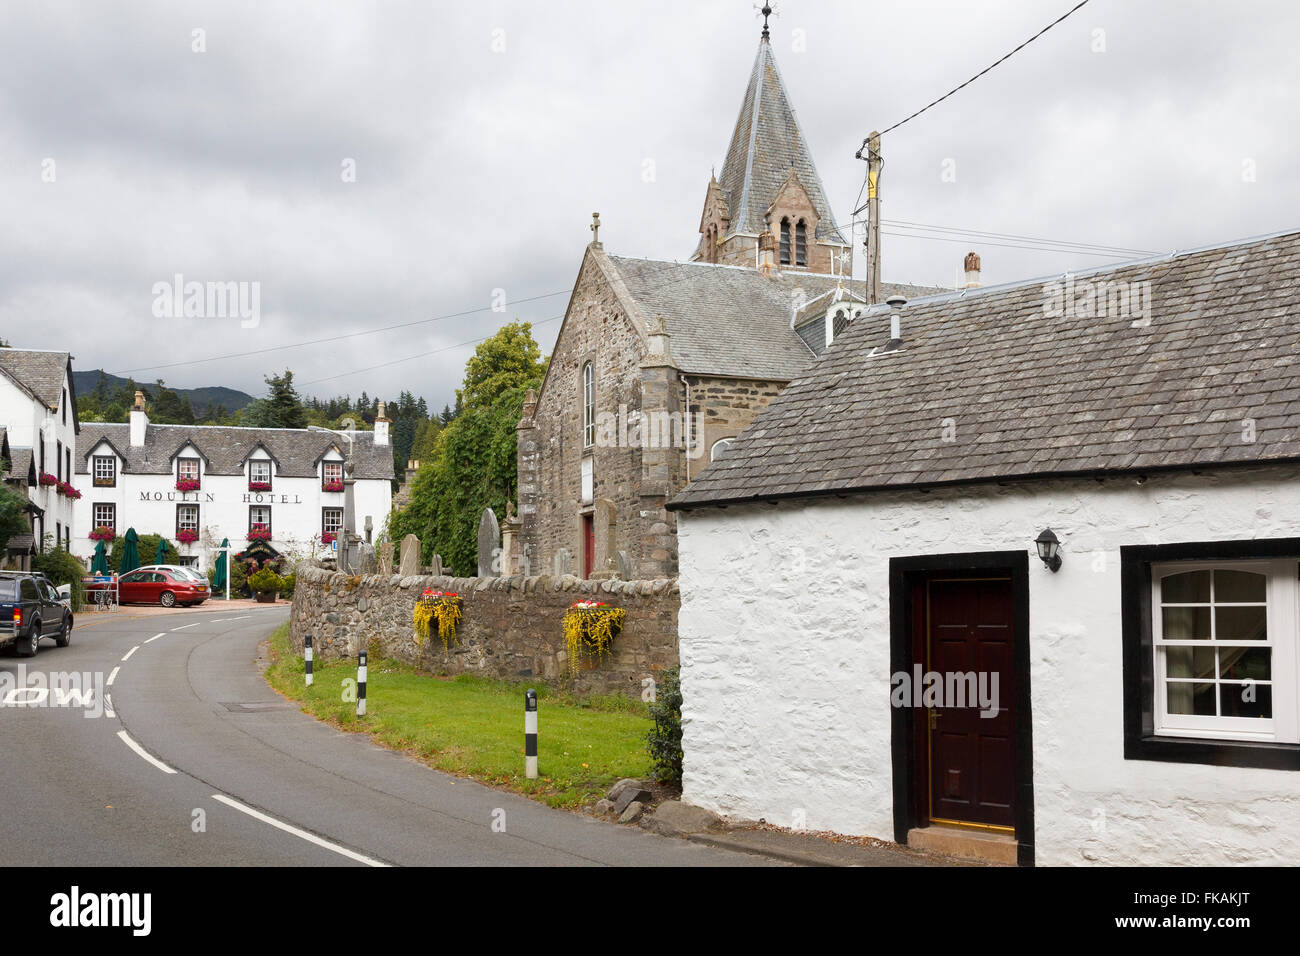 The village of Moulin just  outside the town of Pitclochry in Perthshire, Scotland. The Moulin Hotel in the village - Stock Image